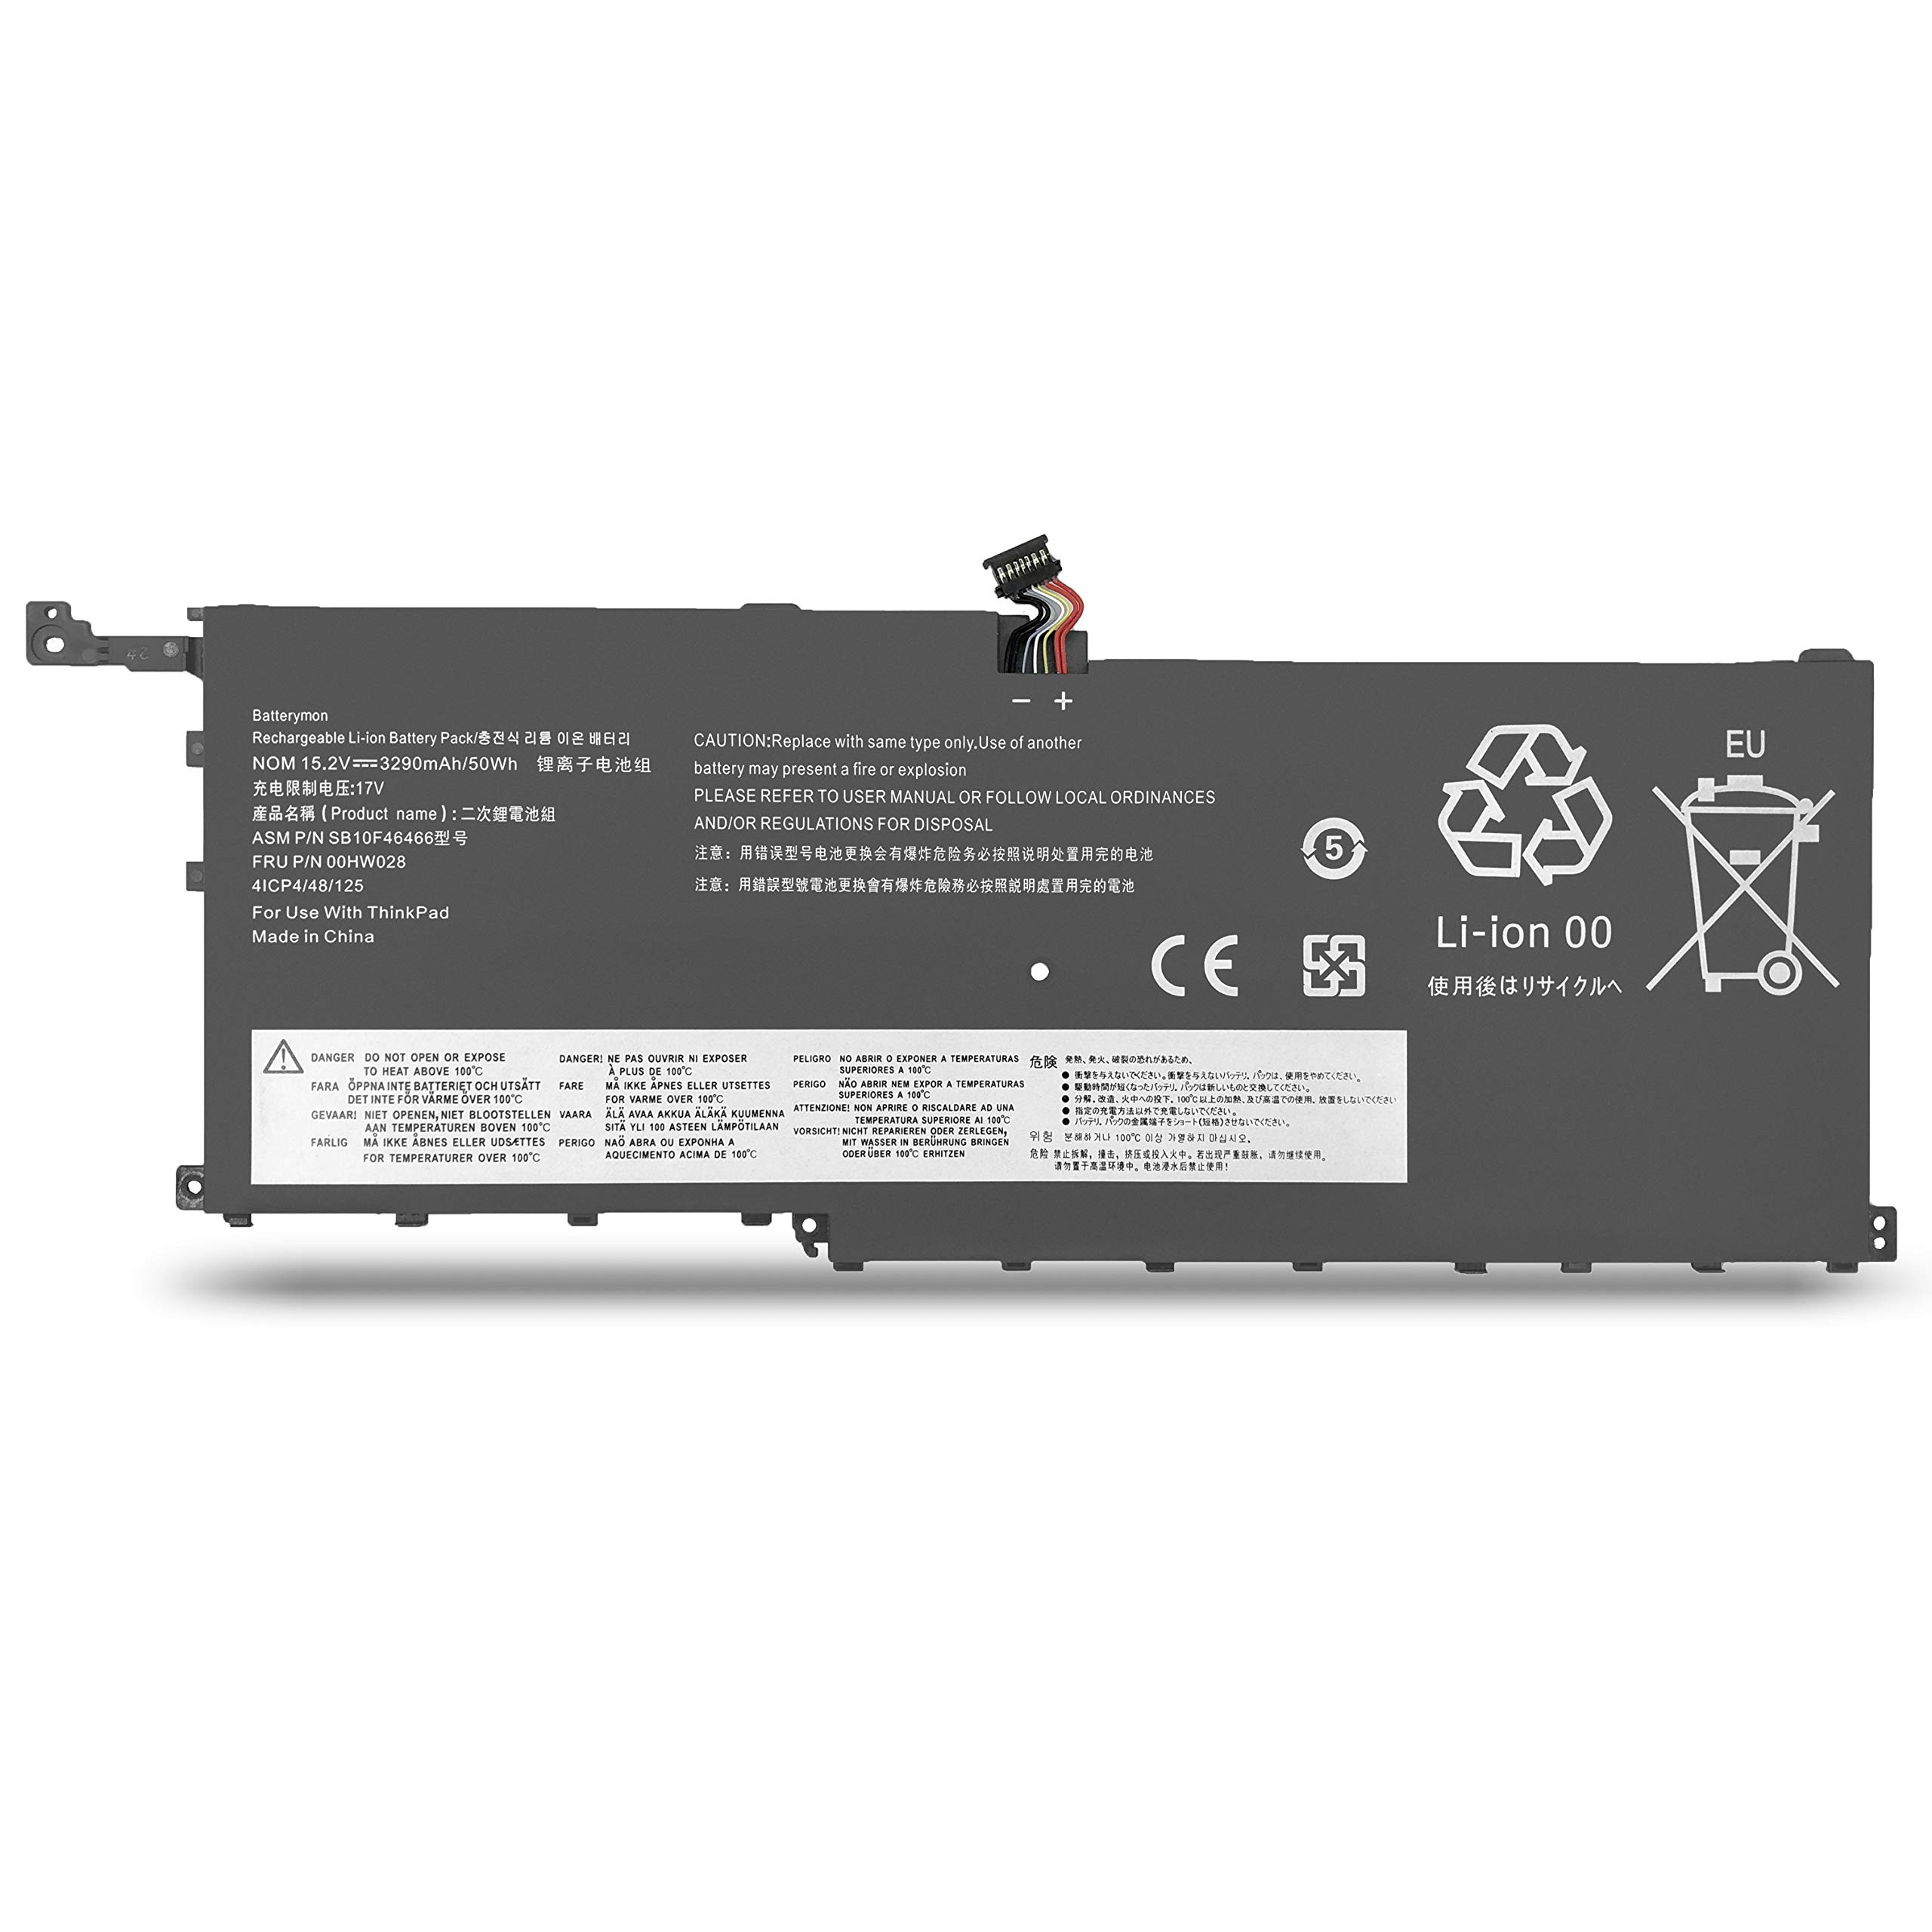 Bateria 00hw028 Para Lenovo Thinkpad X1 Carbon 4th 6th Gen/thinkpad X1 Yoga Ultrabook P/n: 00hw029 Sb10f46466 Sb10f46467